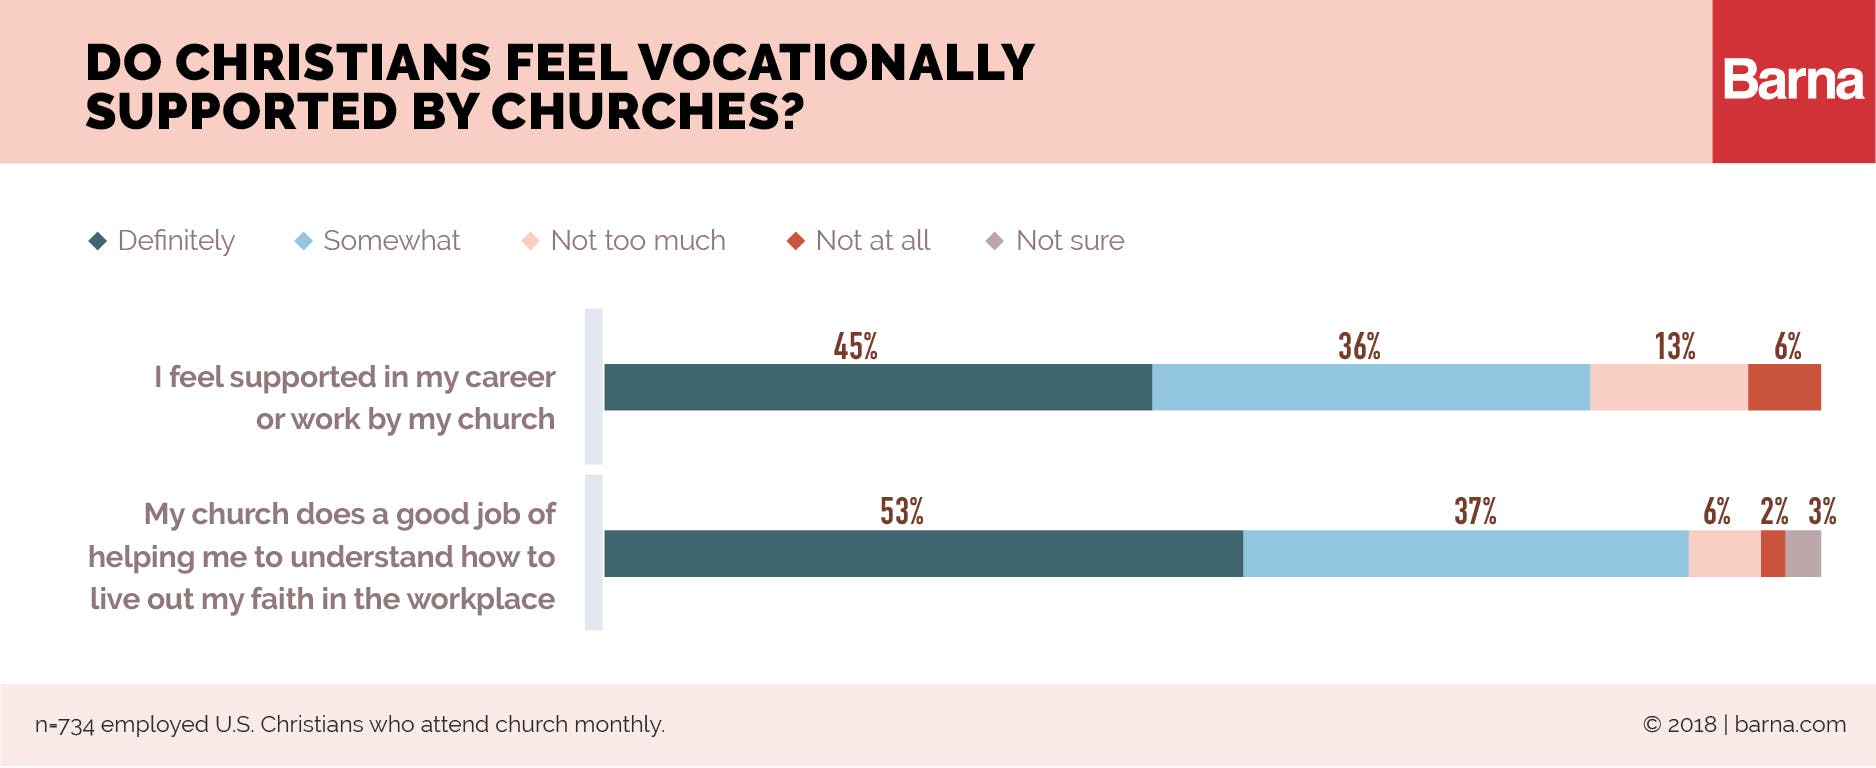 Do Christians Feel Vocationally Supported by Churches?